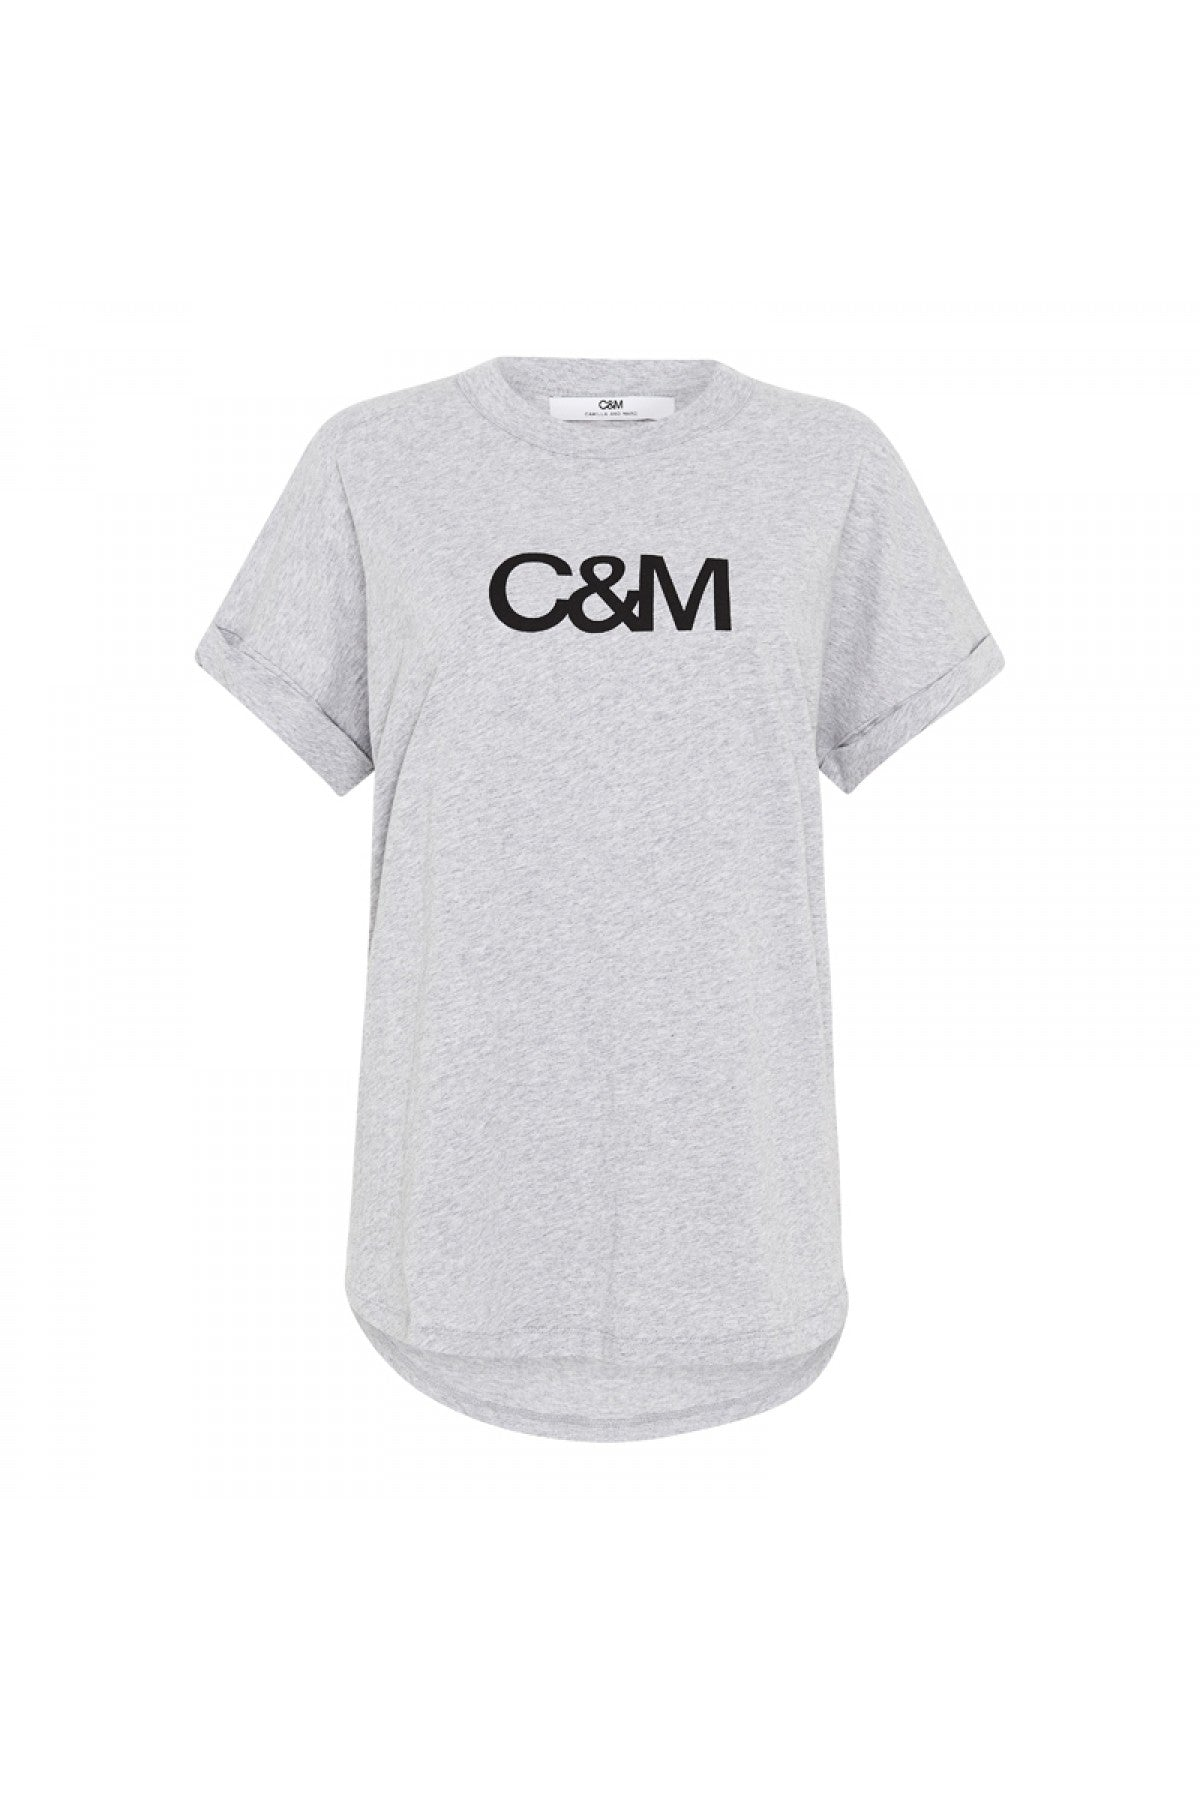 Camilla & Marc Huntington Logo Slub Tee in Grey